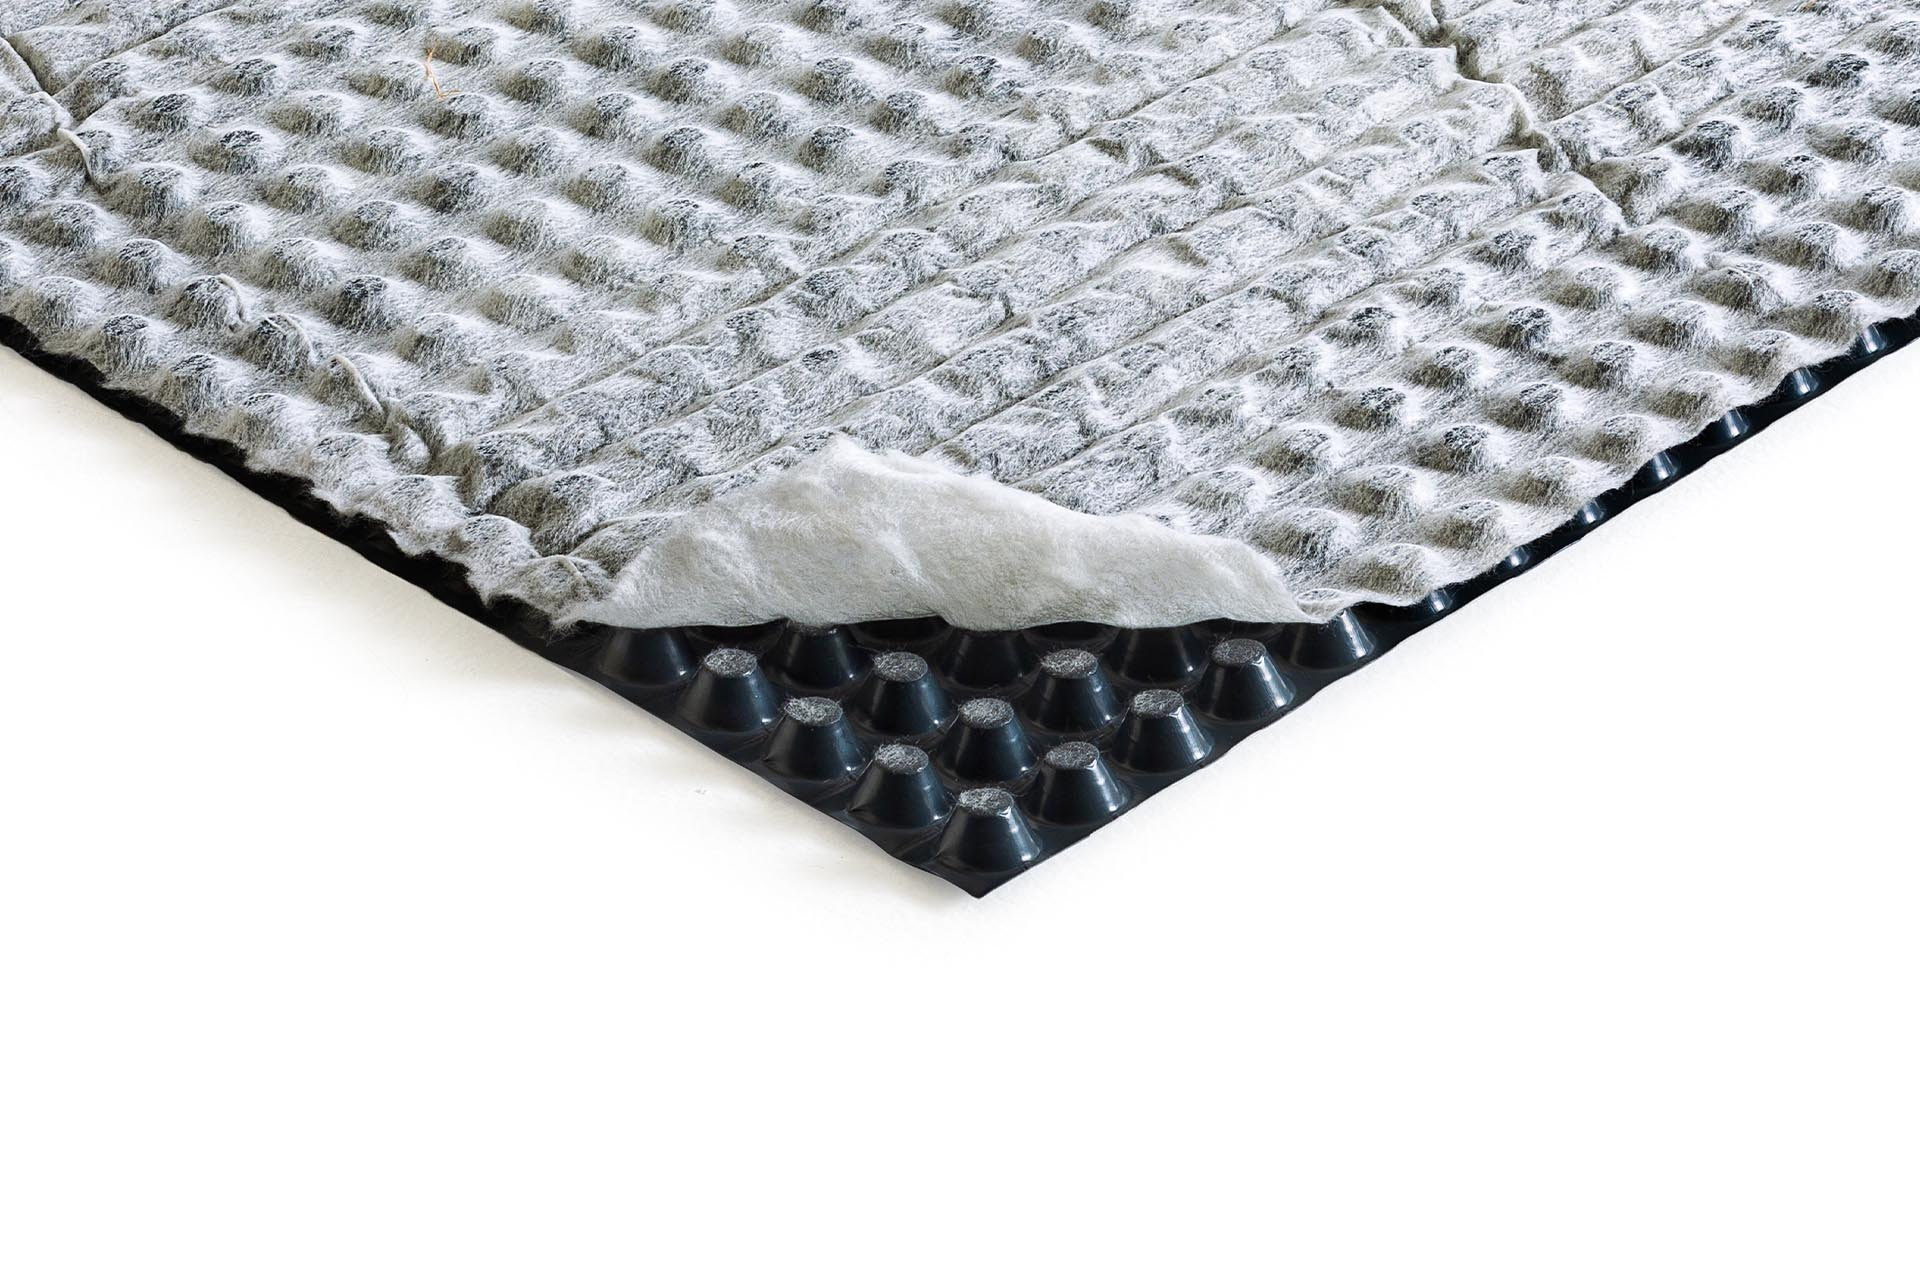 HDPE studded membrane, 20mm thick, with one nonwoven textile